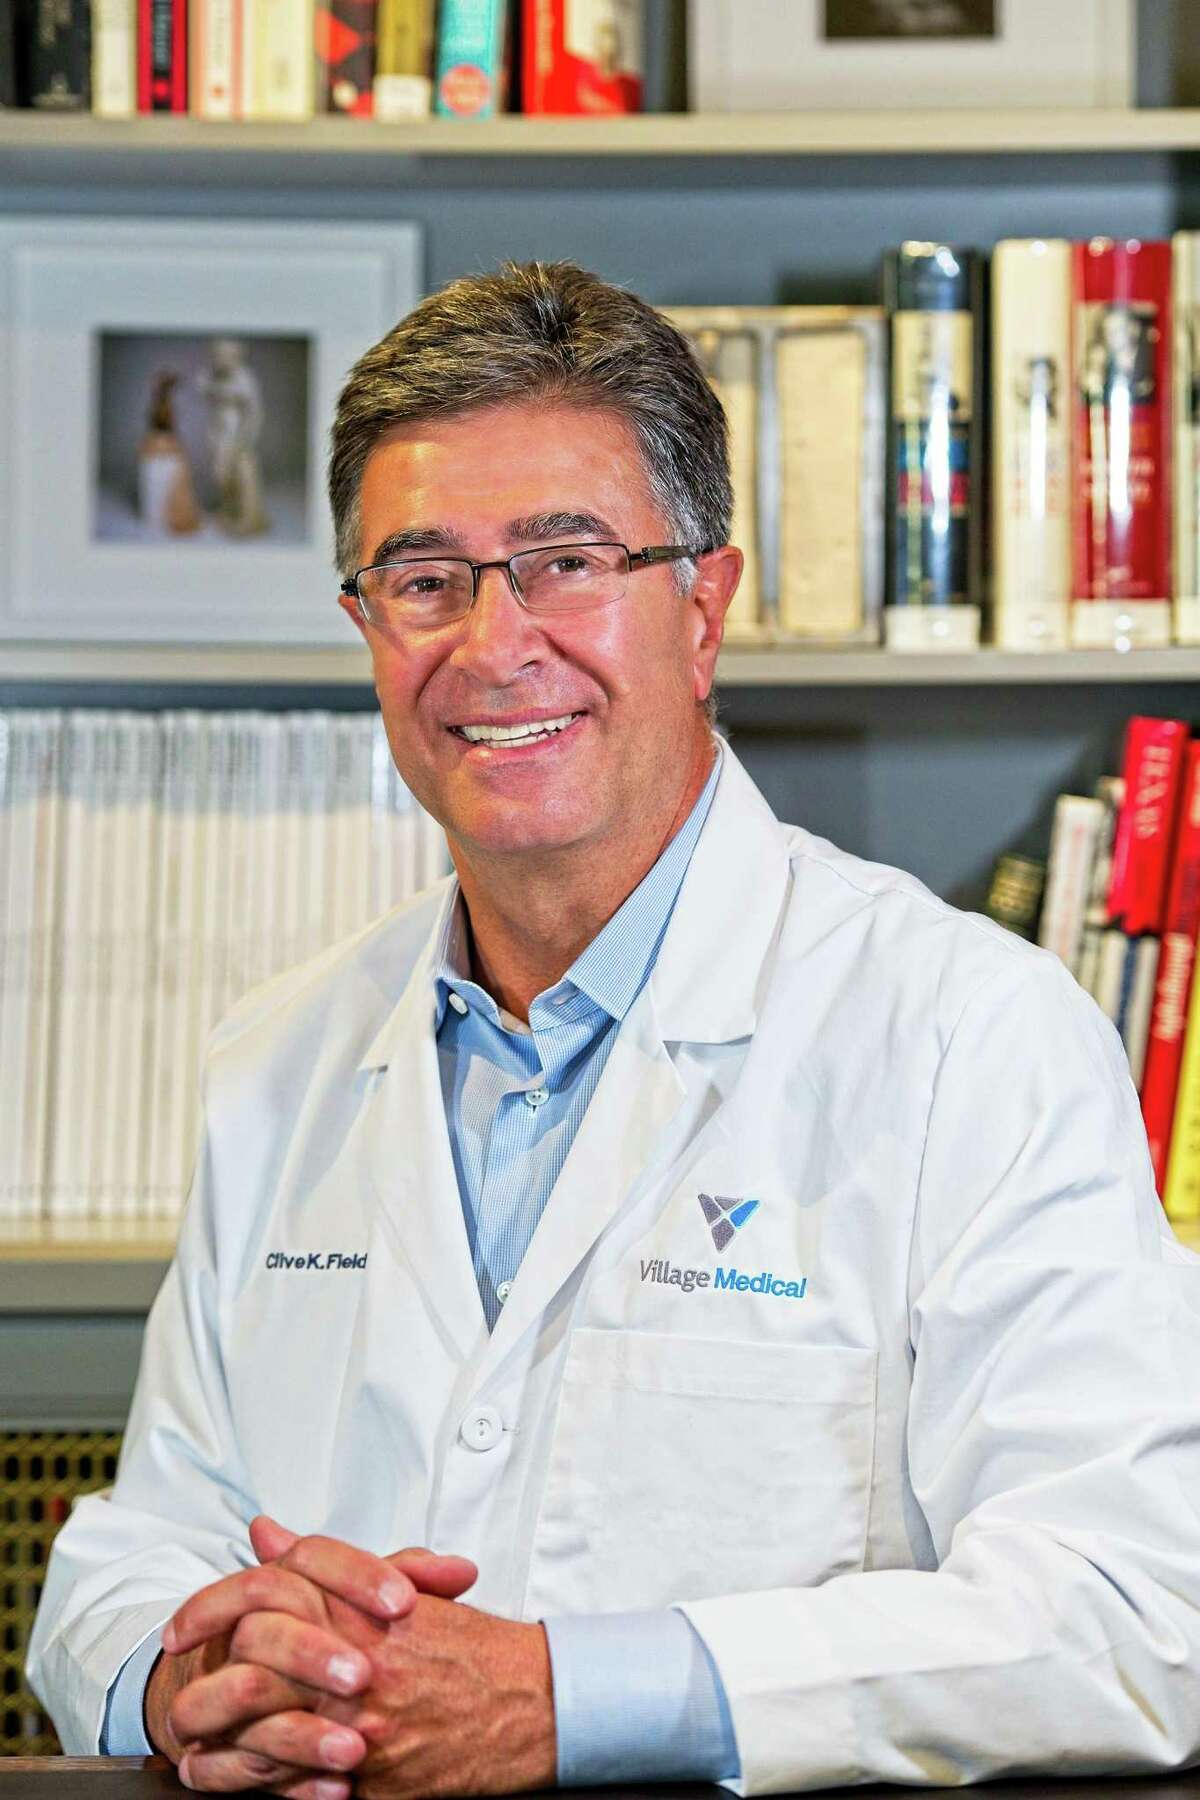 Dr. Clive Fields, M.D. and cofounder and chief medical officer of VillageMD began working side by side with his father in 1991. VillageMD has grown exponentially over the last two decades.